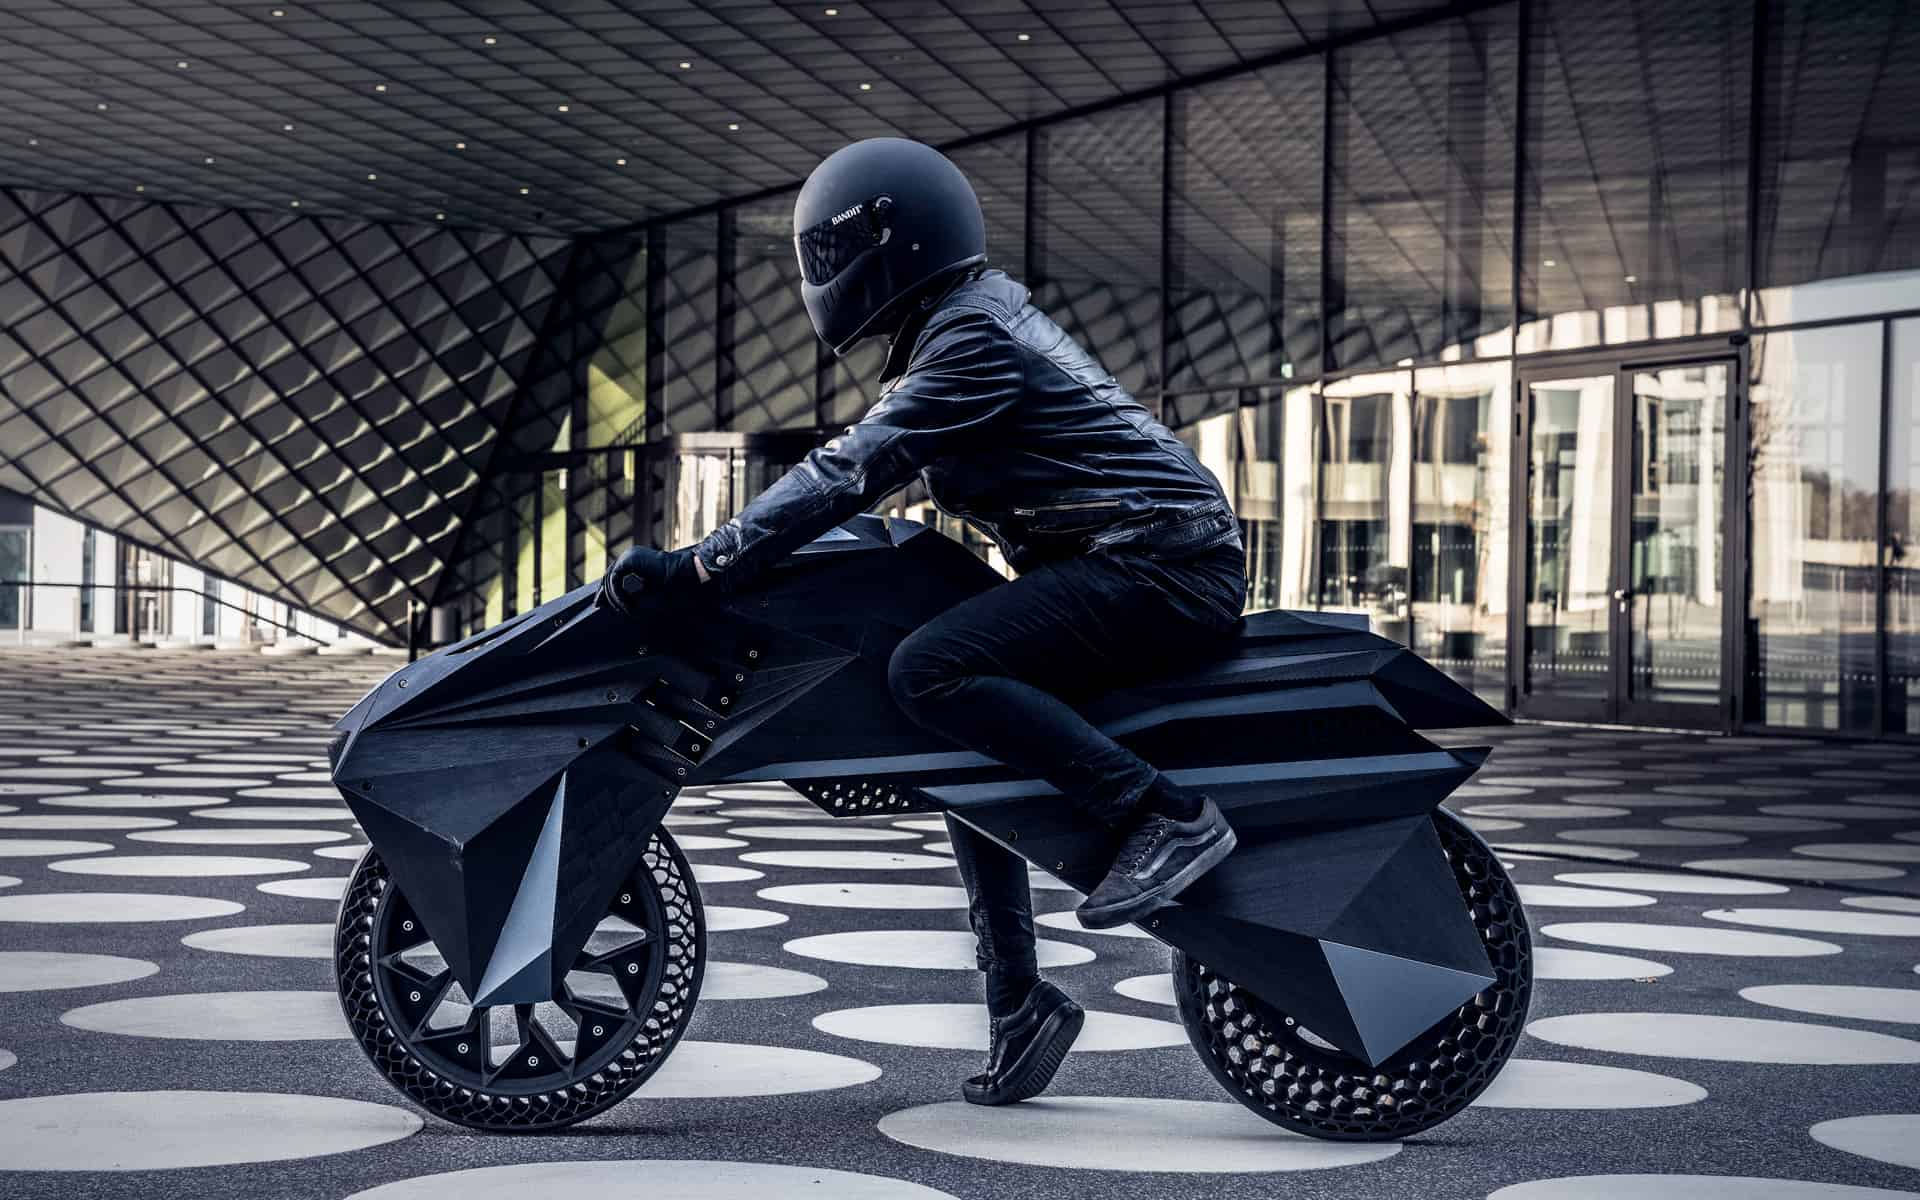 3D Printed E-Motorcycle